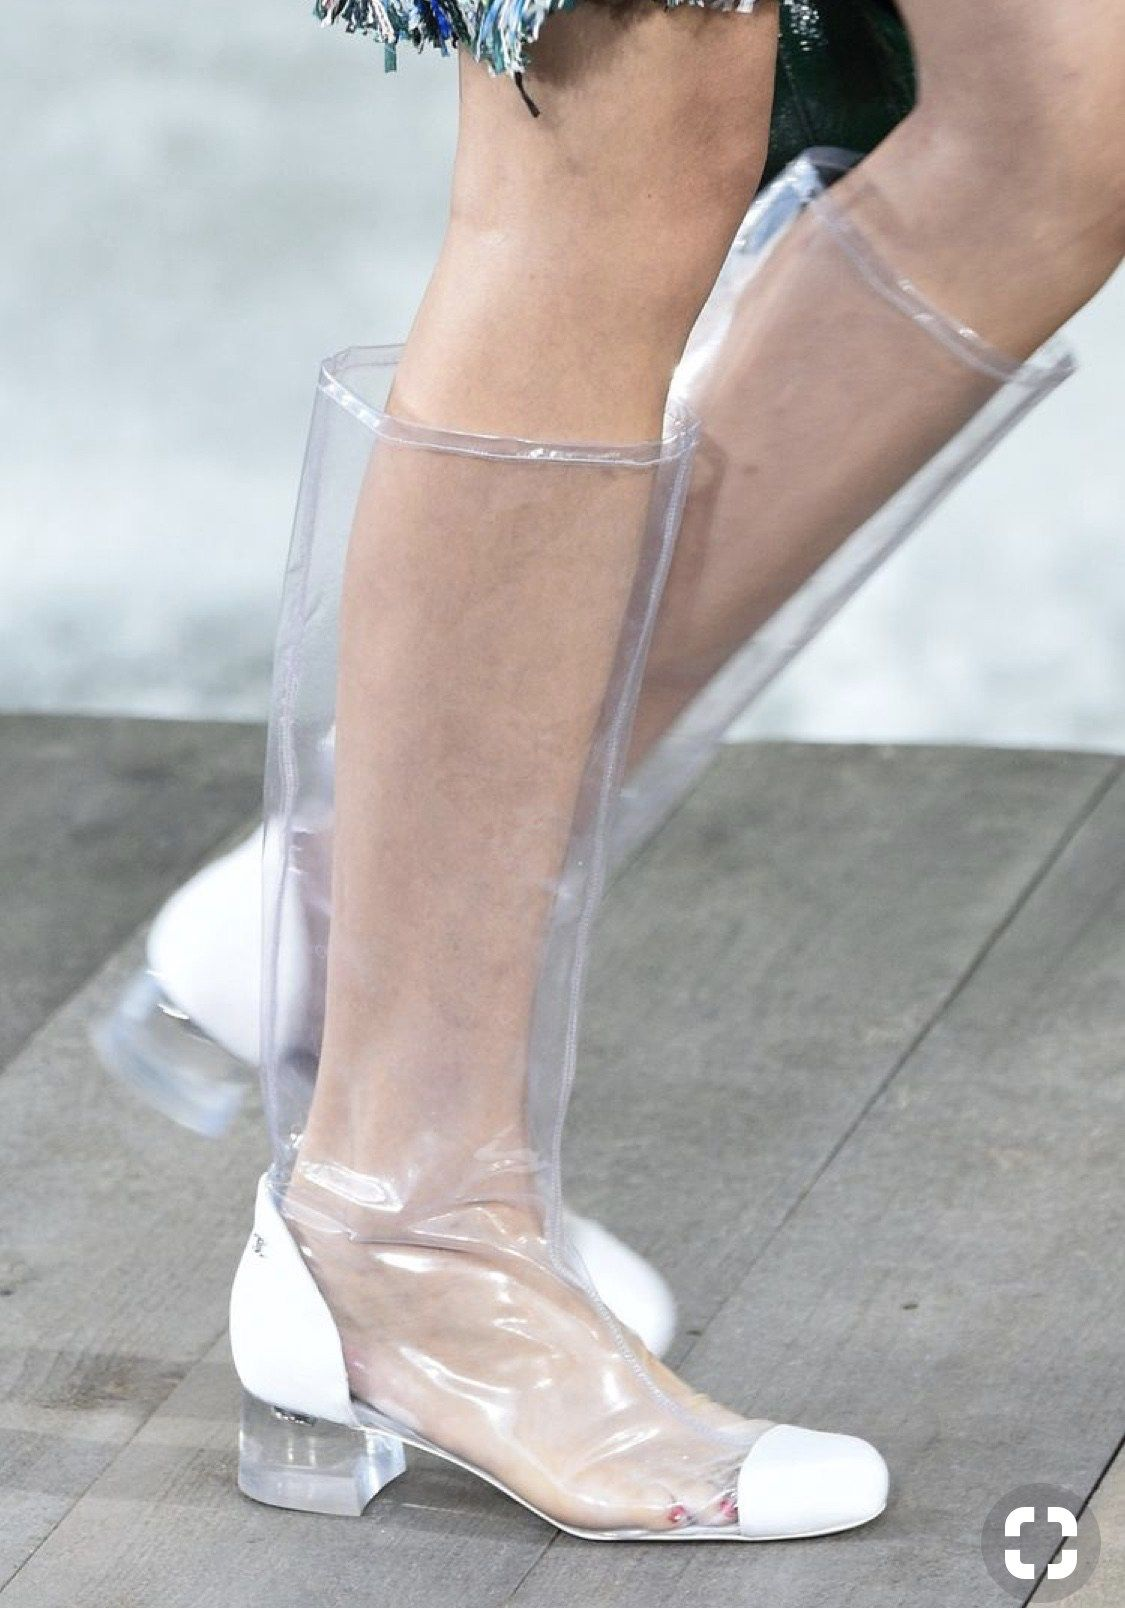 e905ff89f5 Chanel clear shoes, Who did Design the Very First Clear Transparent Shoes?  ~ alley girl